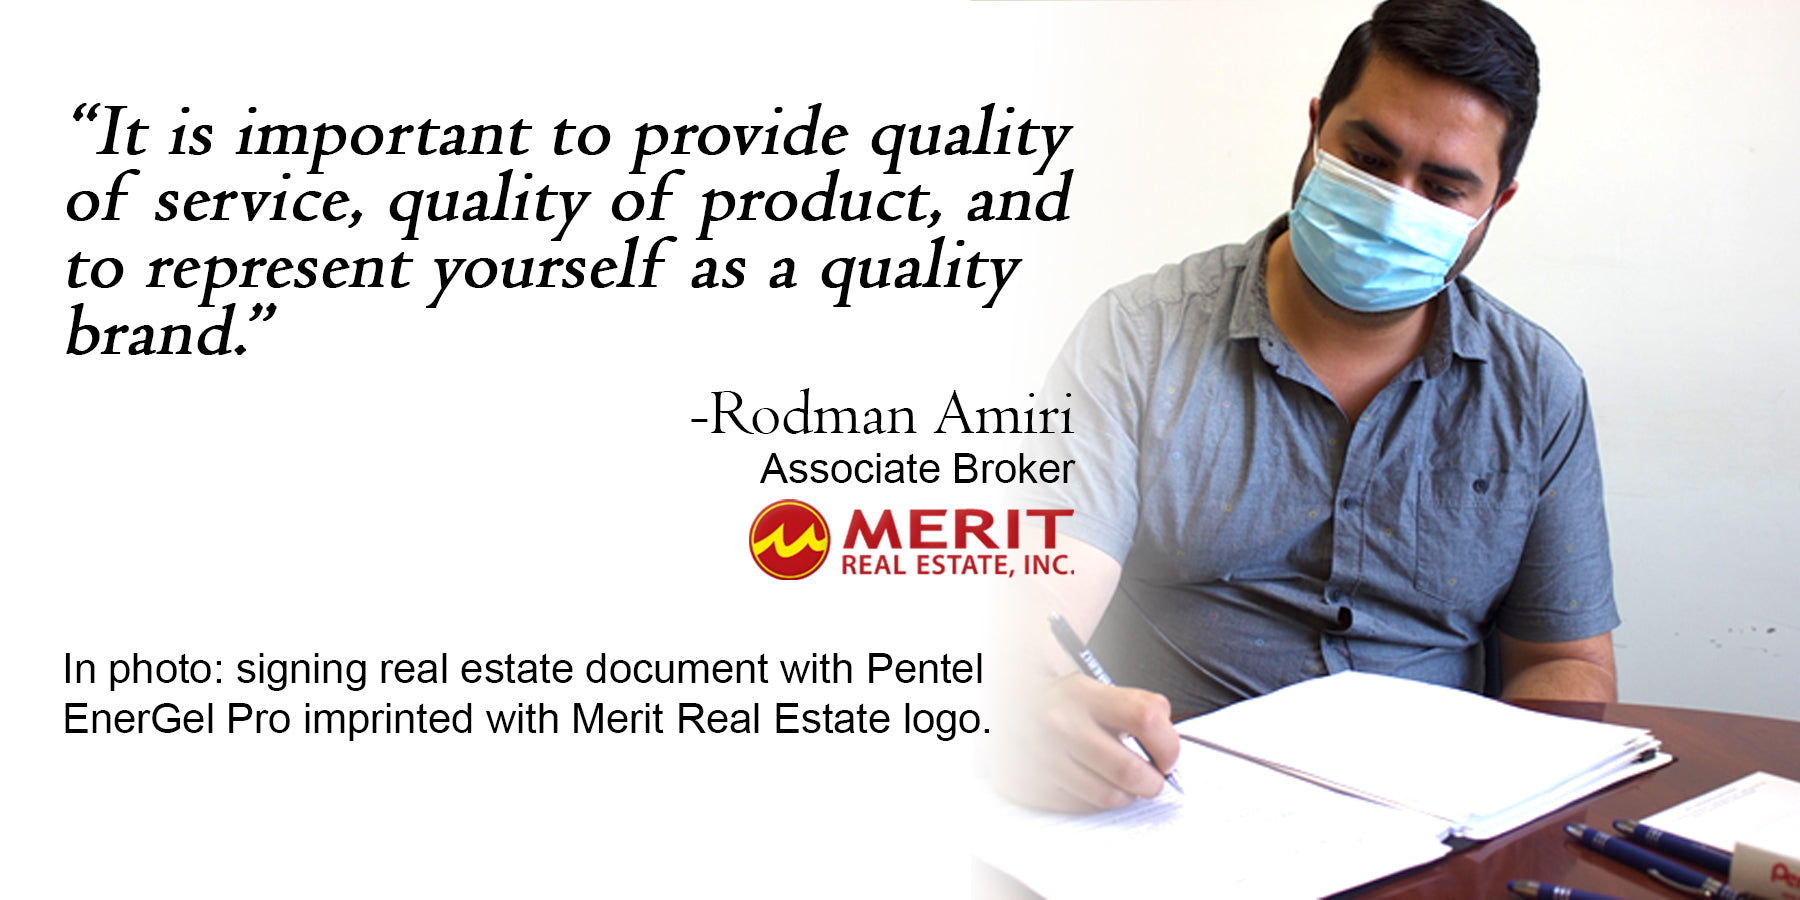 Rodman signing real estate document with Pentel EnerGel Pro imprinted with Merit Real Estate logo.